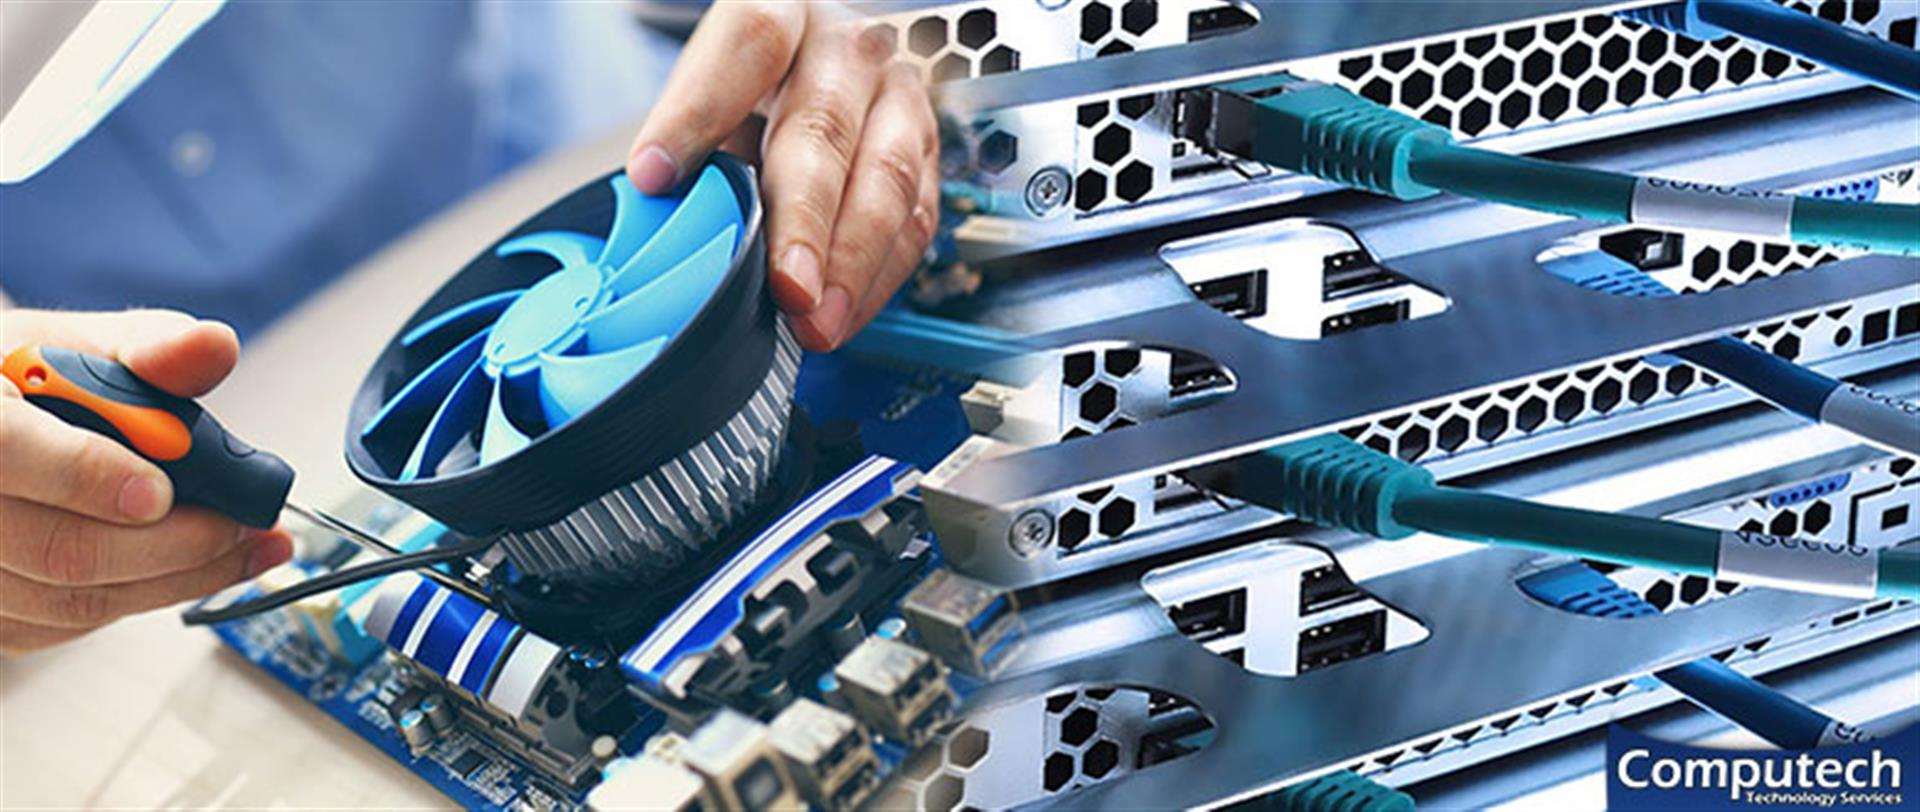 Forest Park Georgia On-Site Computer PC & Printer Repair, Network, Voice & Data Cabling Solutions